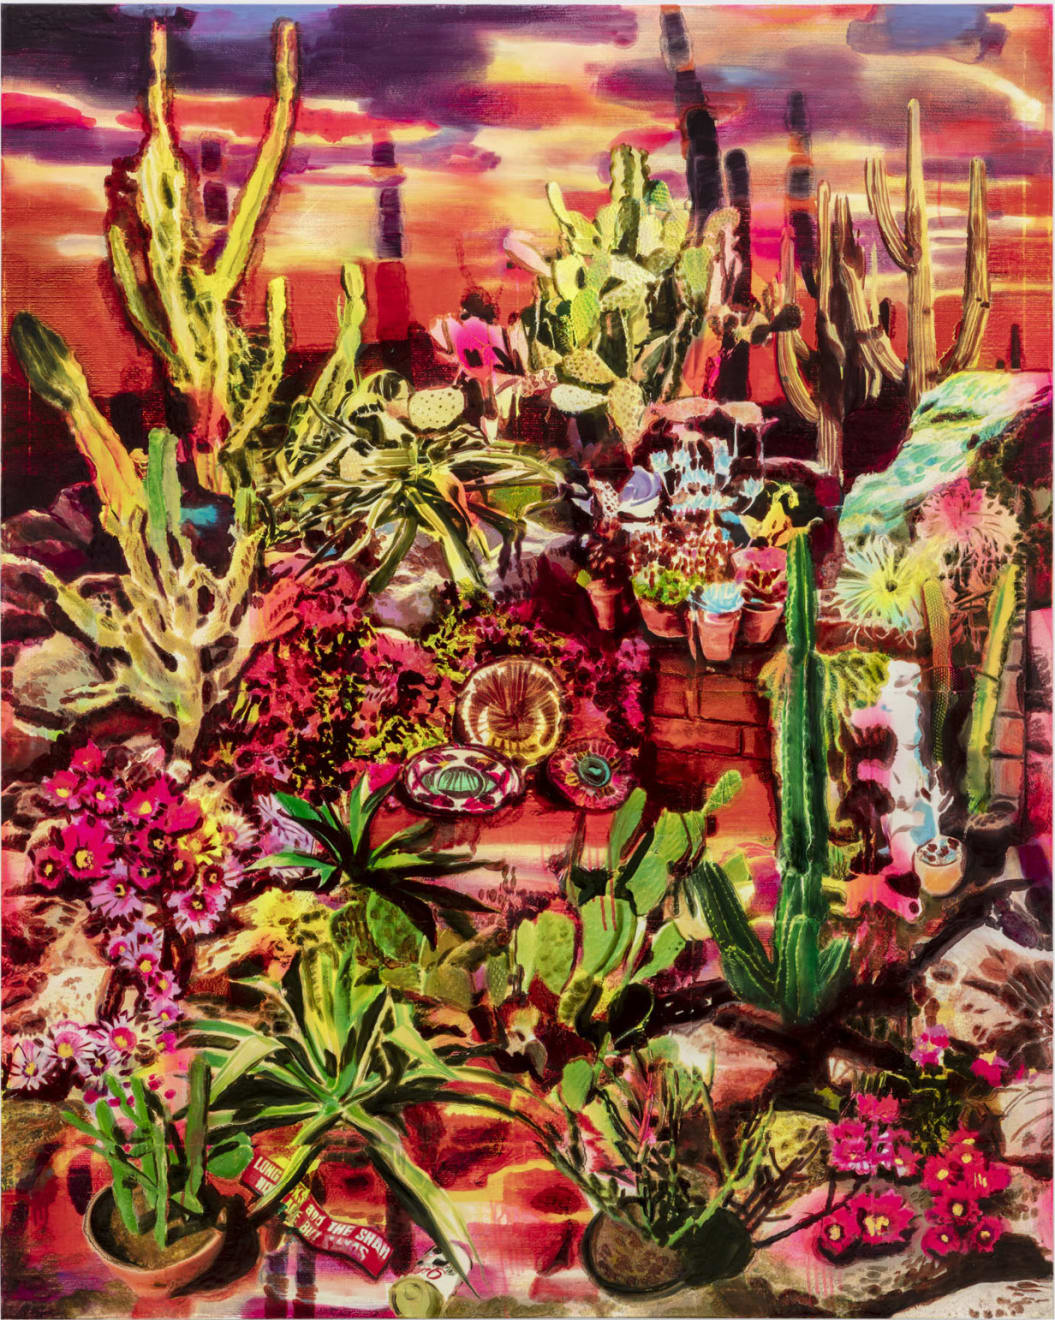 Rosson Crow, Heat Wave, 2020